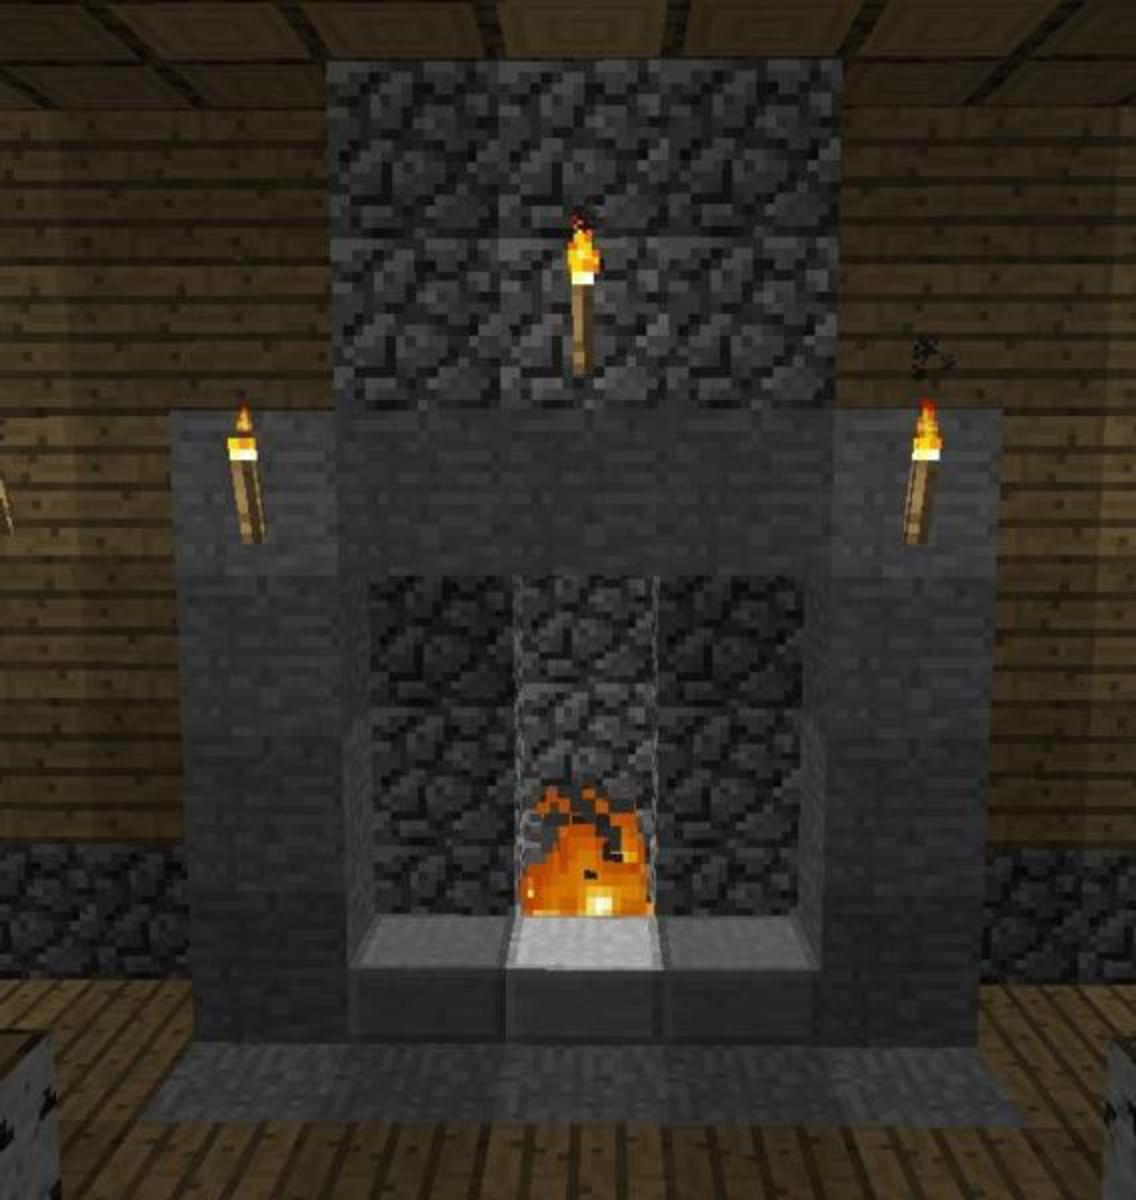 Alternate fireplace design.